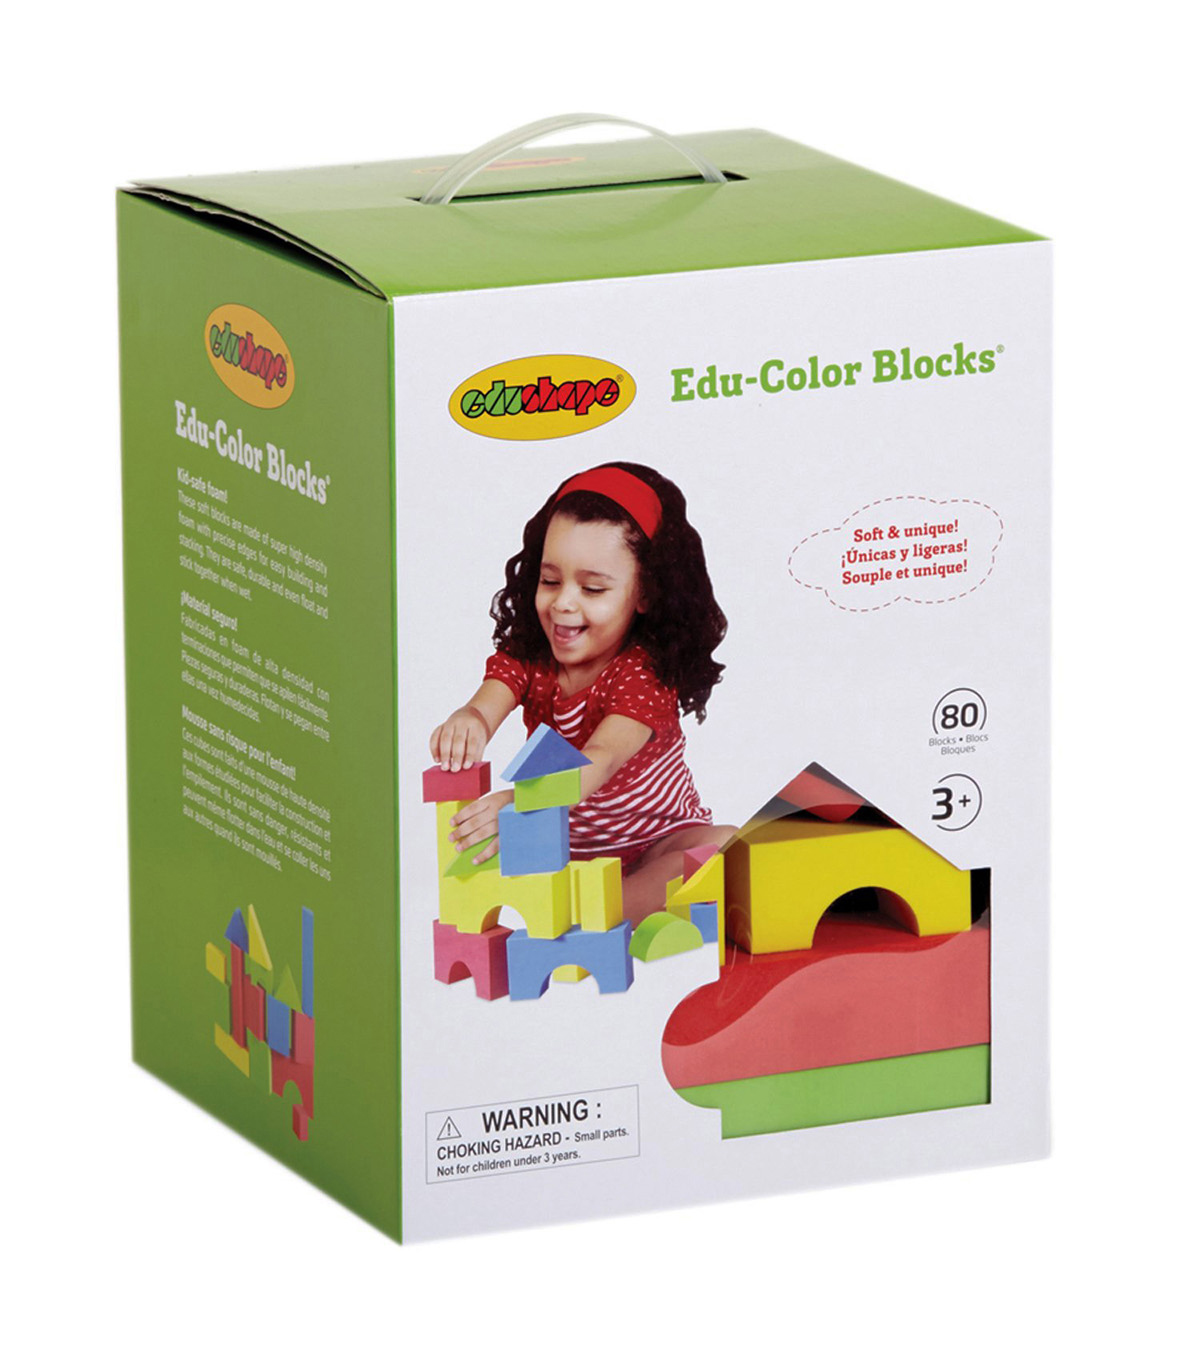 Edushape Edu-Color Building Blocks, 80 Pieces